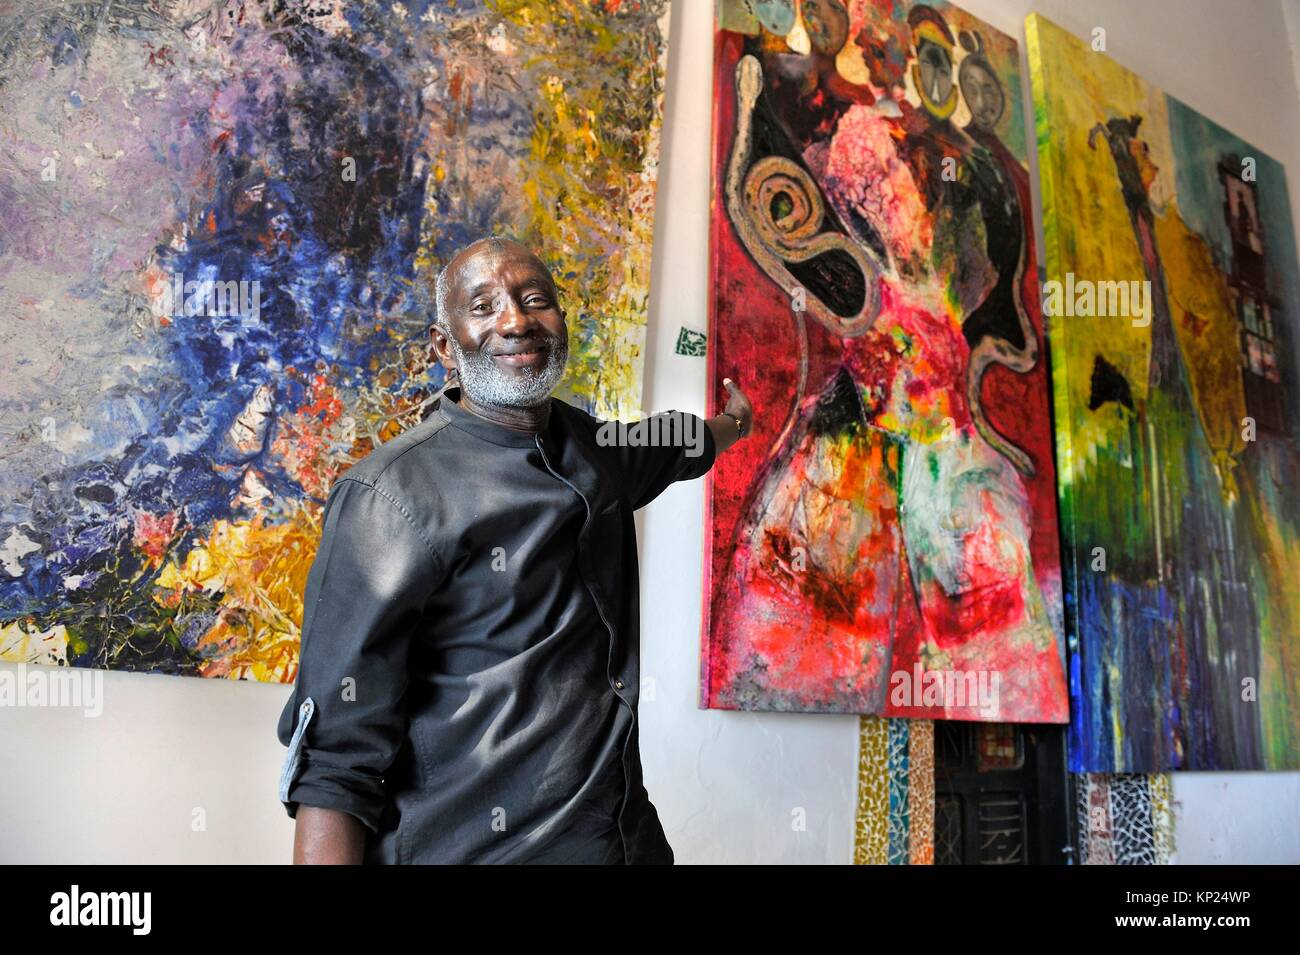 Senegalese artist painter Abdoulaye Diallo in his house and workshop, Ngor island, Dakar, Senegal, West Africa. - Stock Image